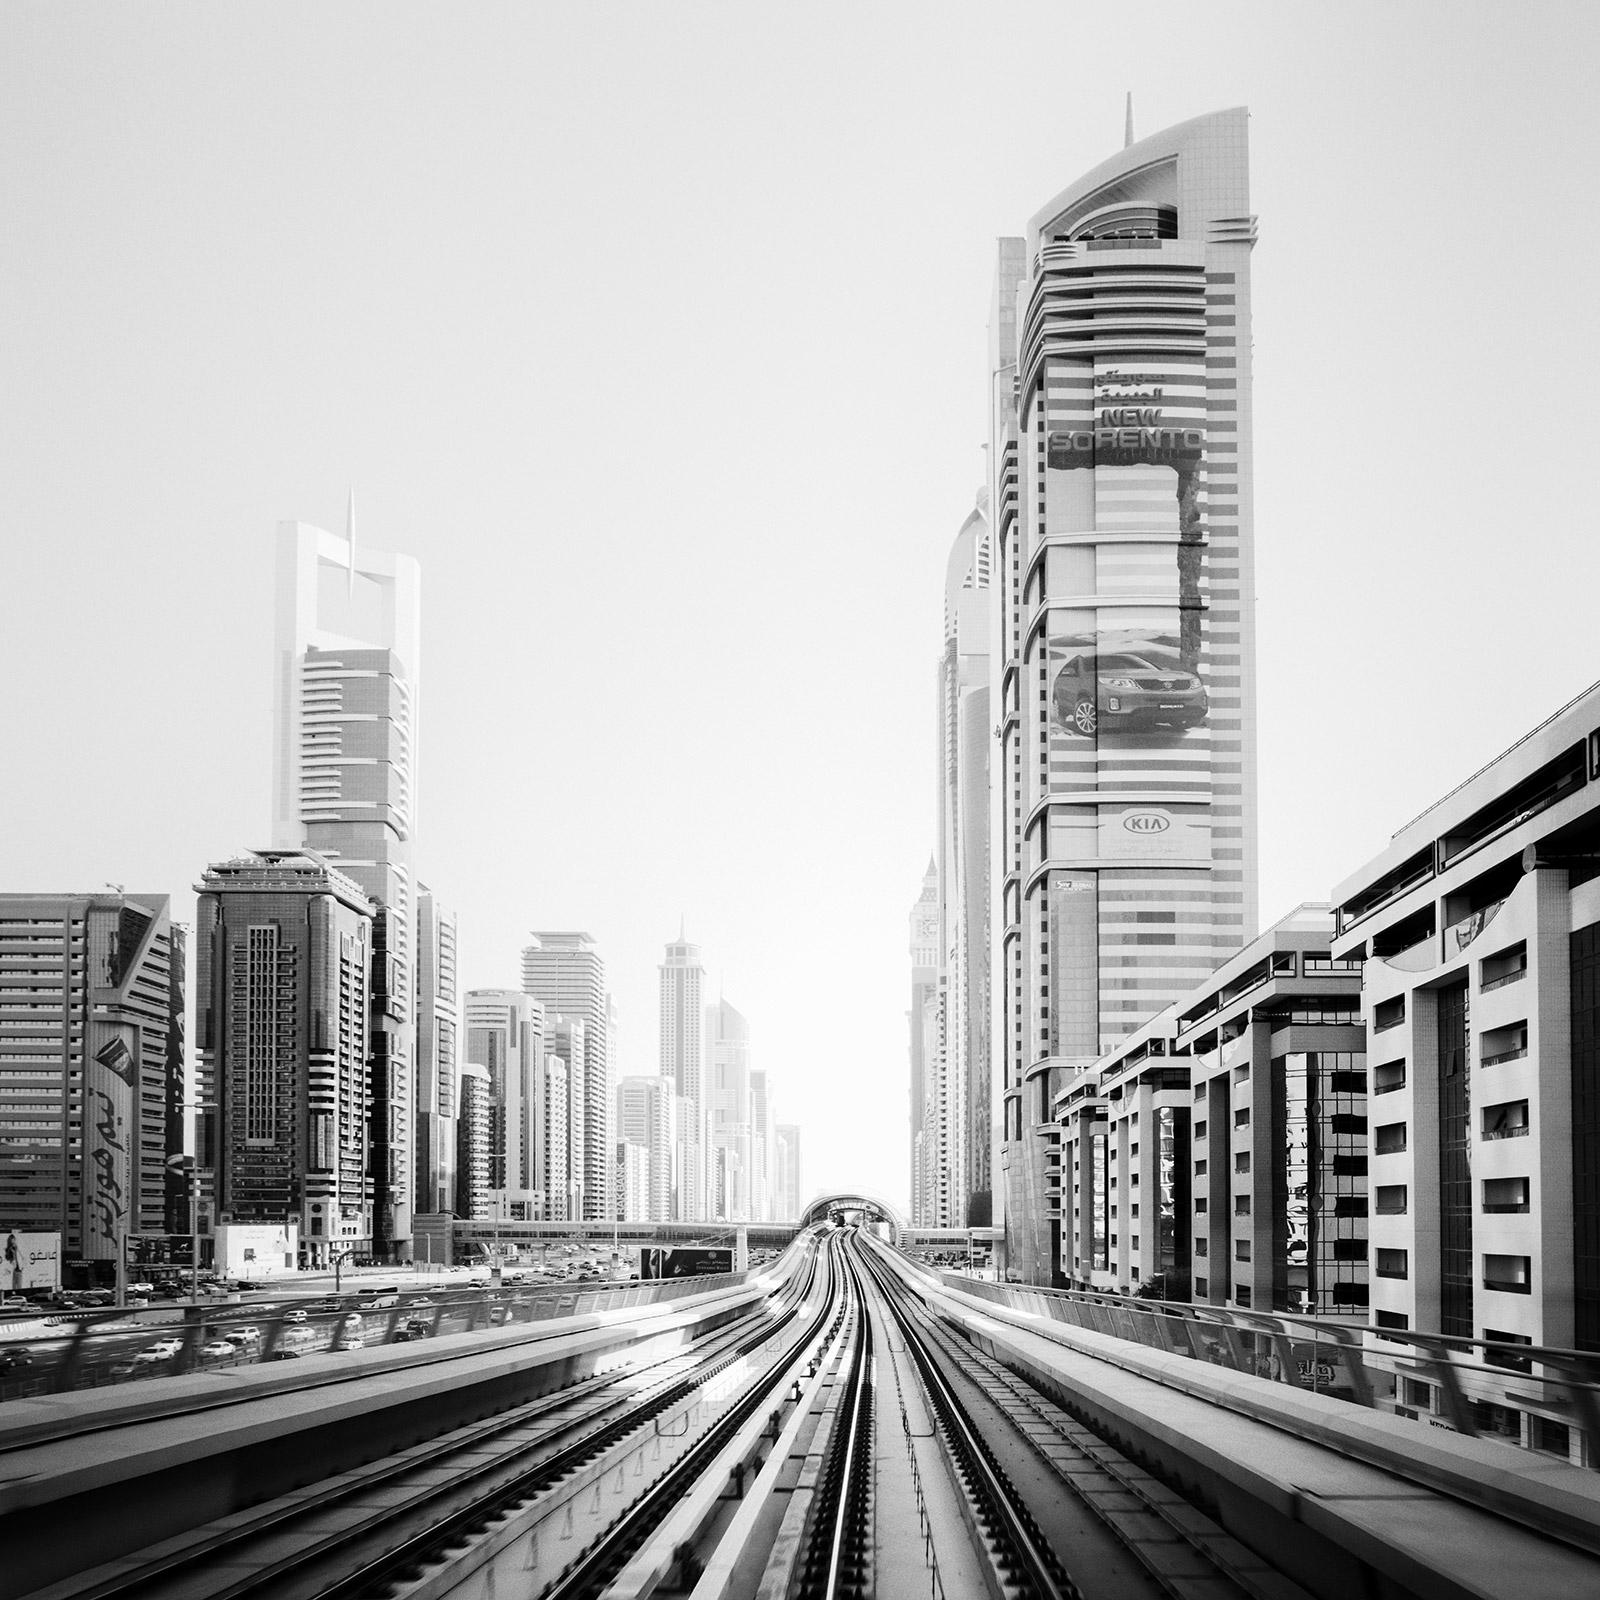 New Sorento, Dubai Mega City contemporary black and white photography landscapes